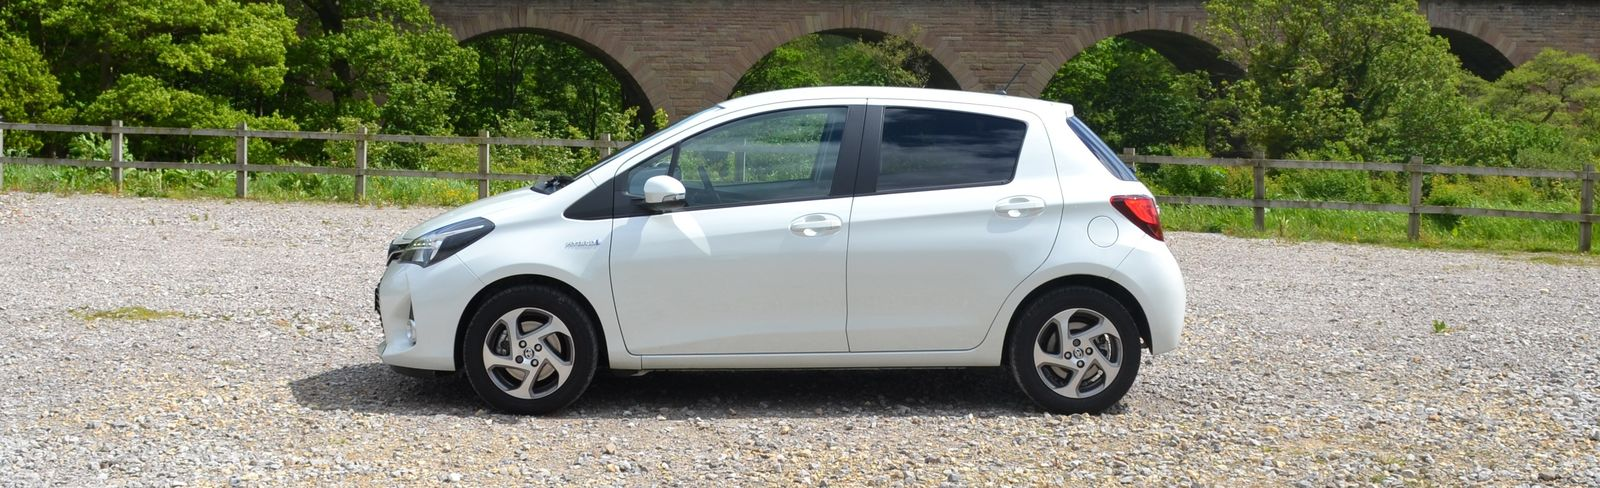 Hybrid driving tips with the Toyota Yaris Hybrid  carwow